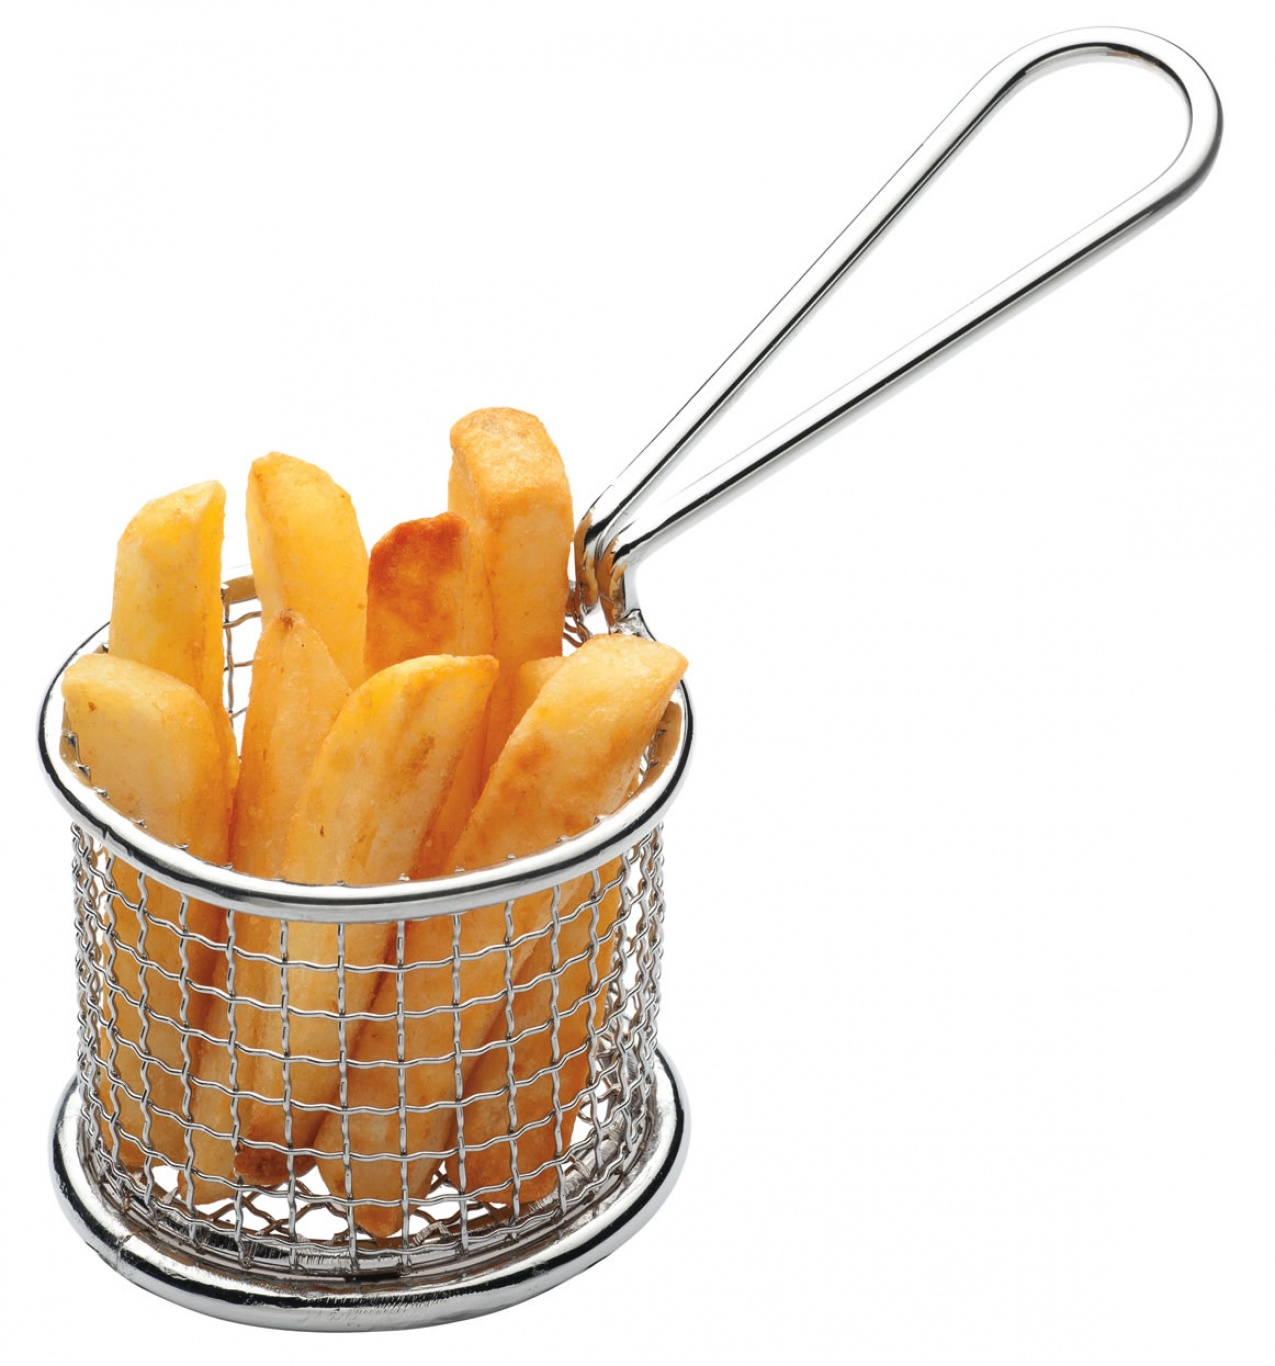 Image of Mini Stainless Steel  Frying Basket 8.5 cm